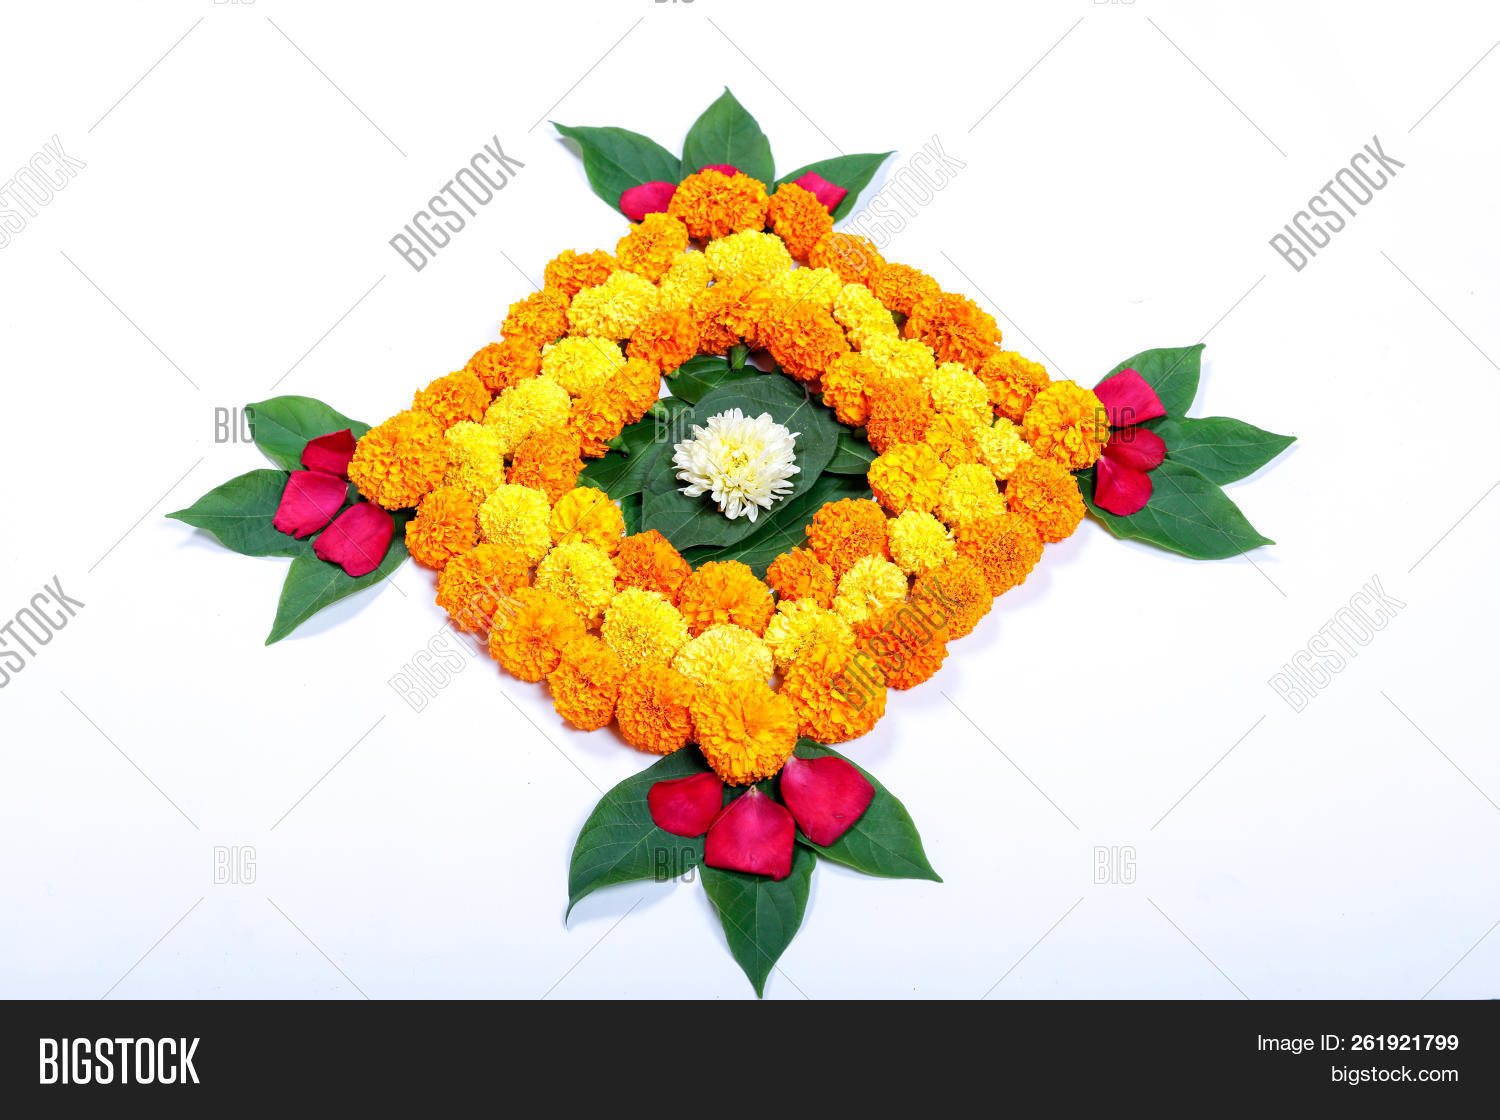 Marigold Flower Image Photo Free Trial Bigstock